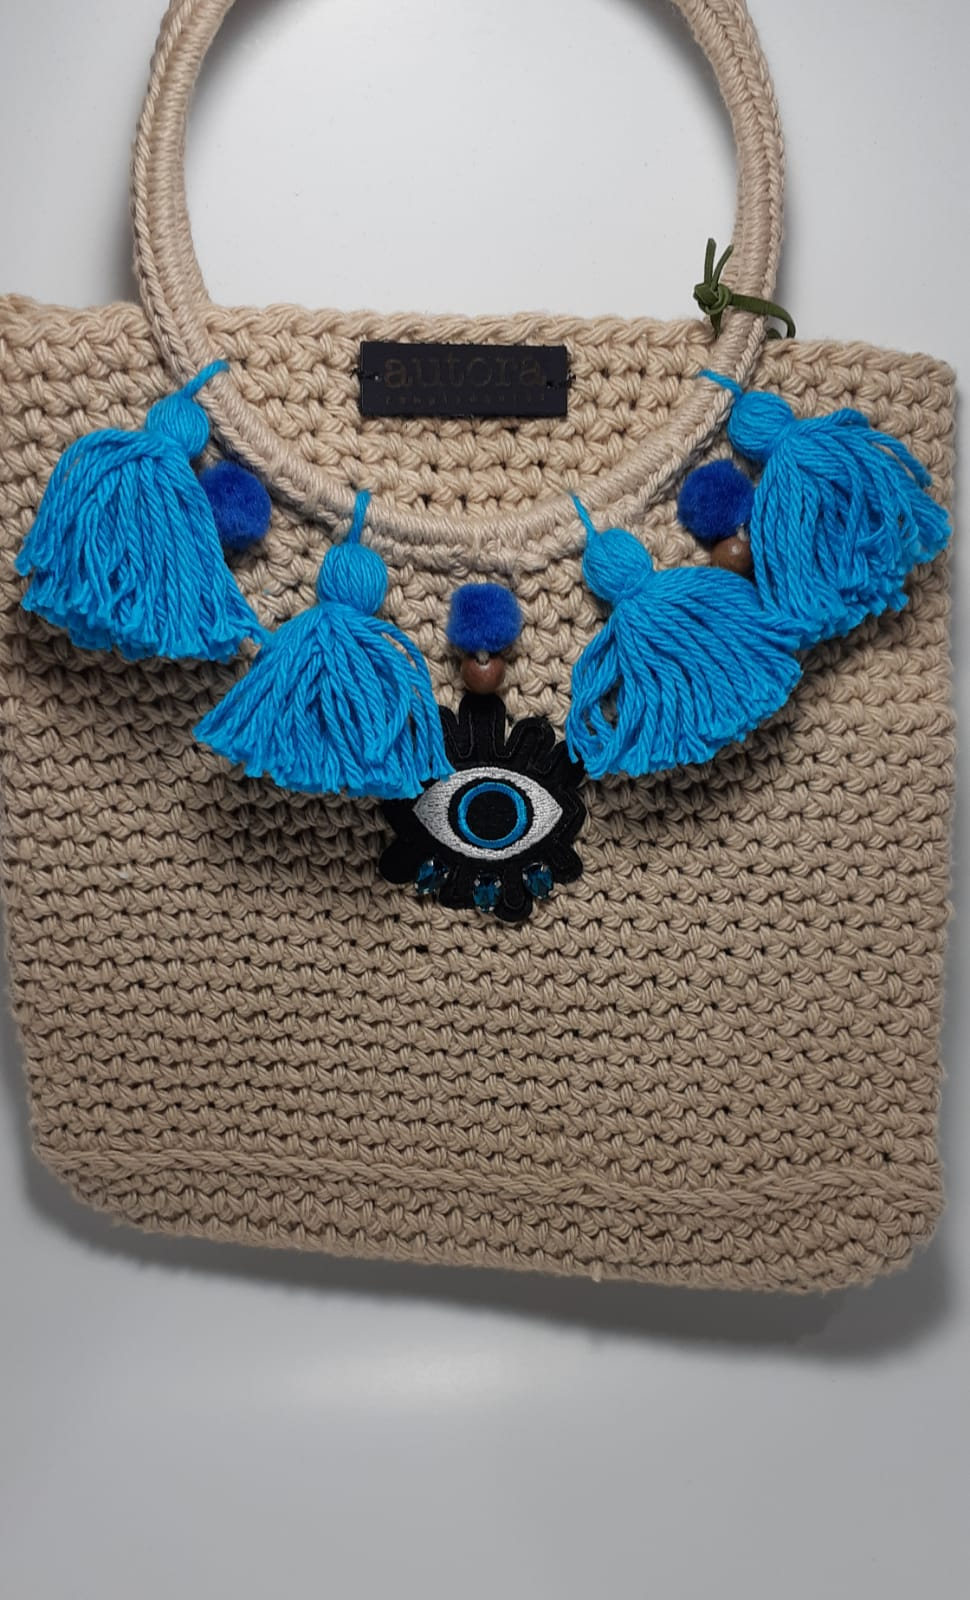 Evil eye boho bag - Andy & Rachel Studio